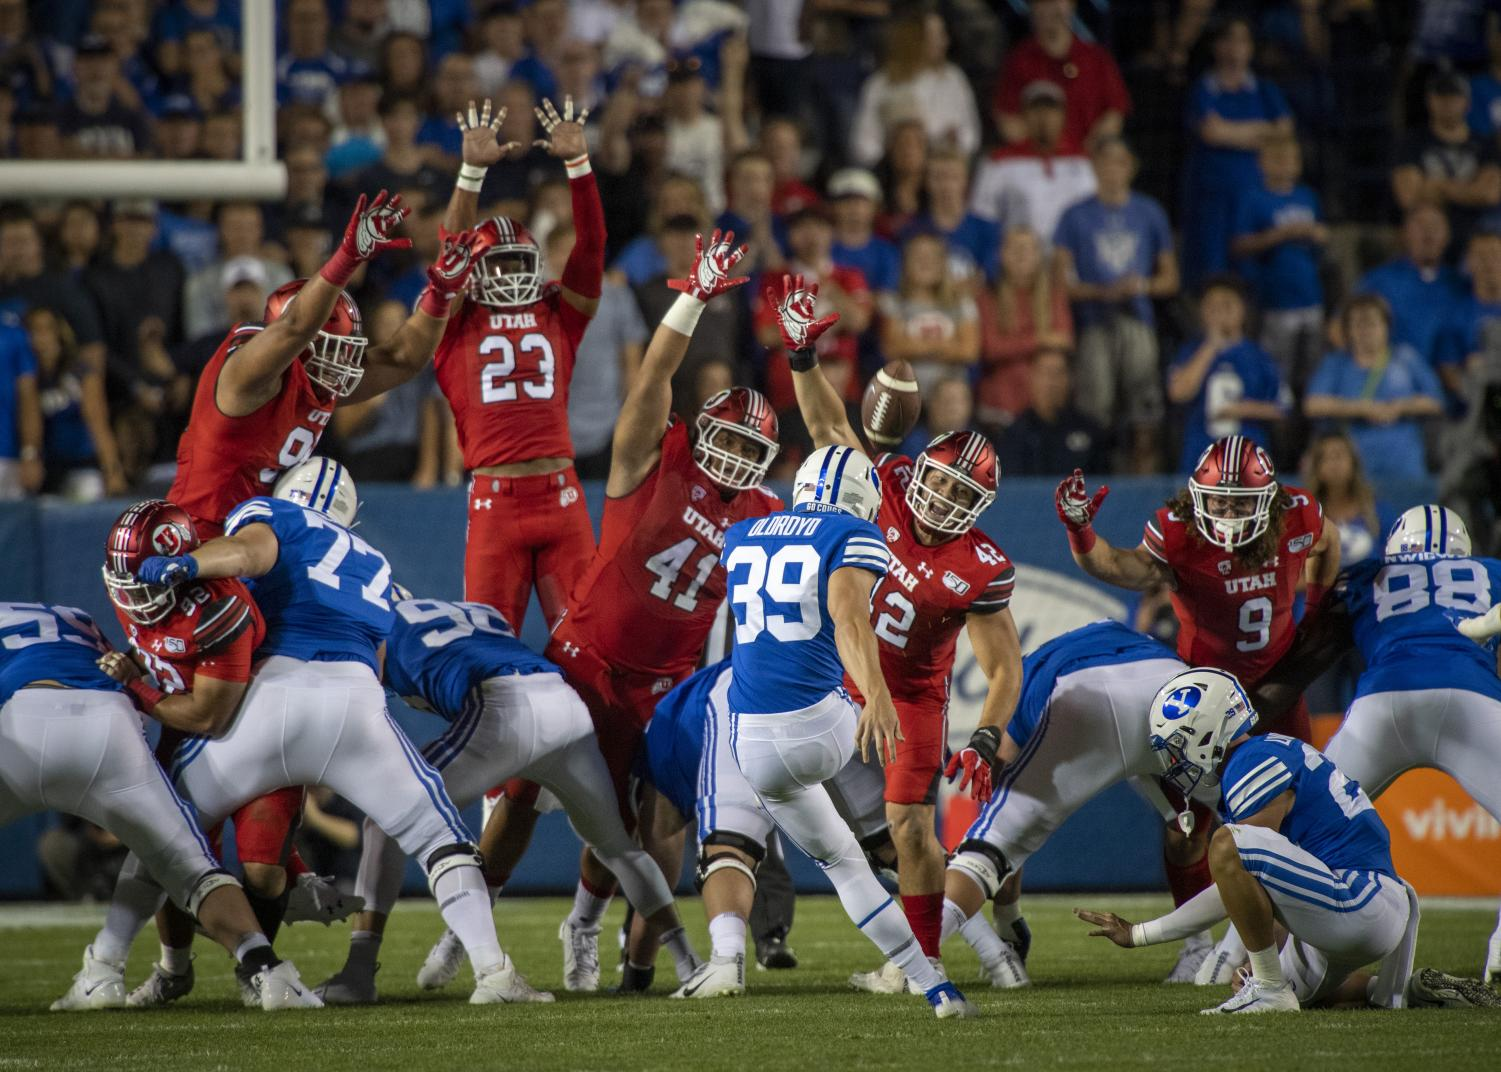 Brigham Young University freshman linebacker Jake Oldroyd (39) kicks a field goal during an NCAA Football game vs. The University of Utah at LaVell Edwards Stadium in Provo, Utah on Thursday, Aug. 29, 2019. (Photo by Kiffer Creveling | The Daily Utah Chronicle)